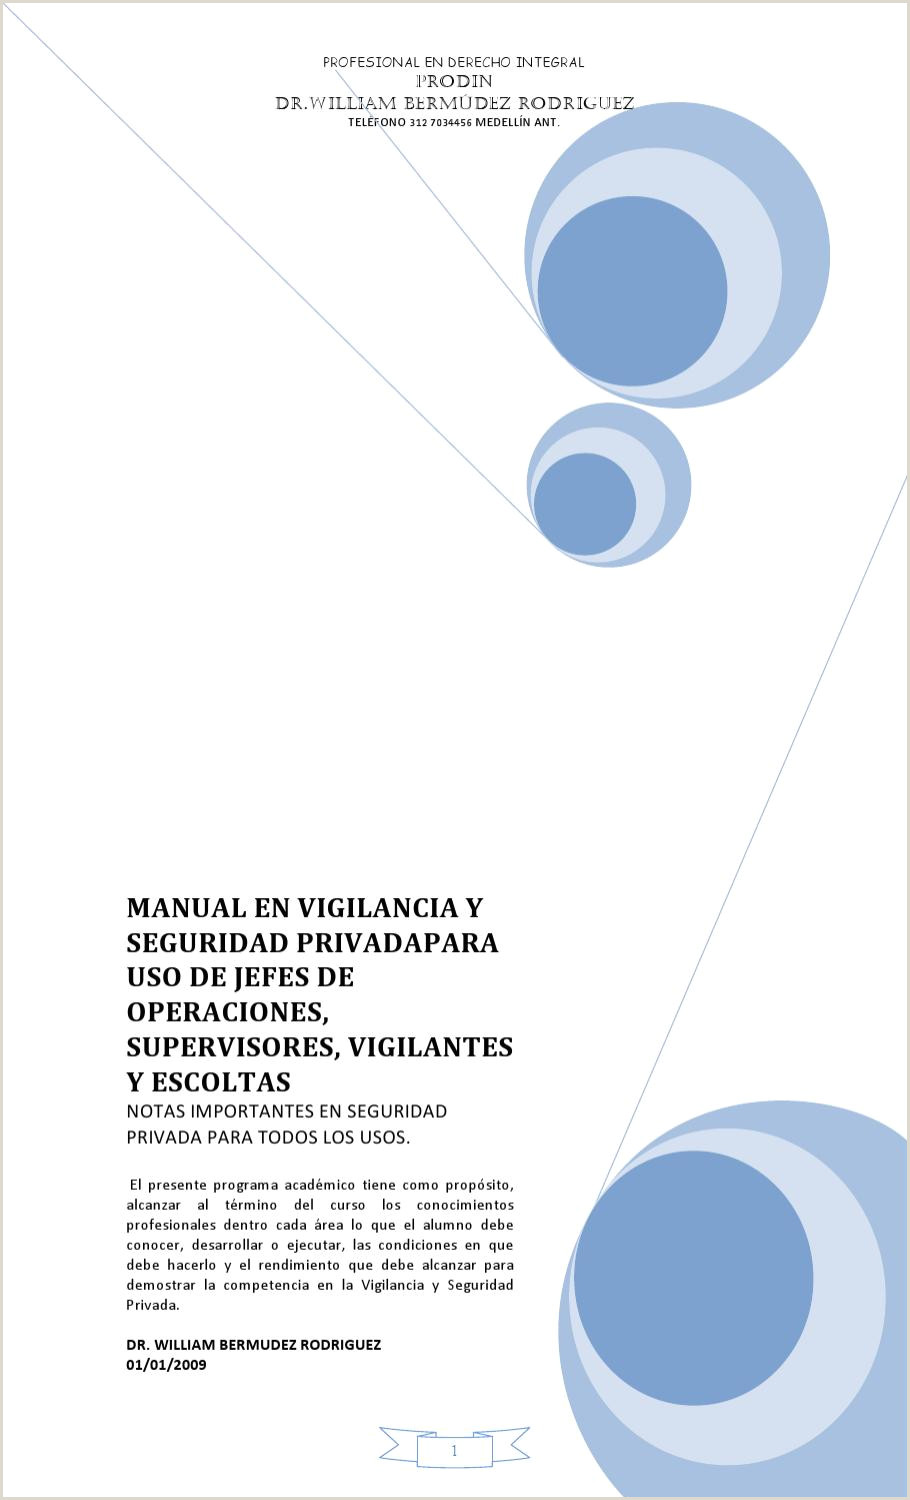 Formato De Hoja De Vida Minerva Sencilla Para Descargar Manual De Vigilancia Y Seguridad Privada by William Bermudez